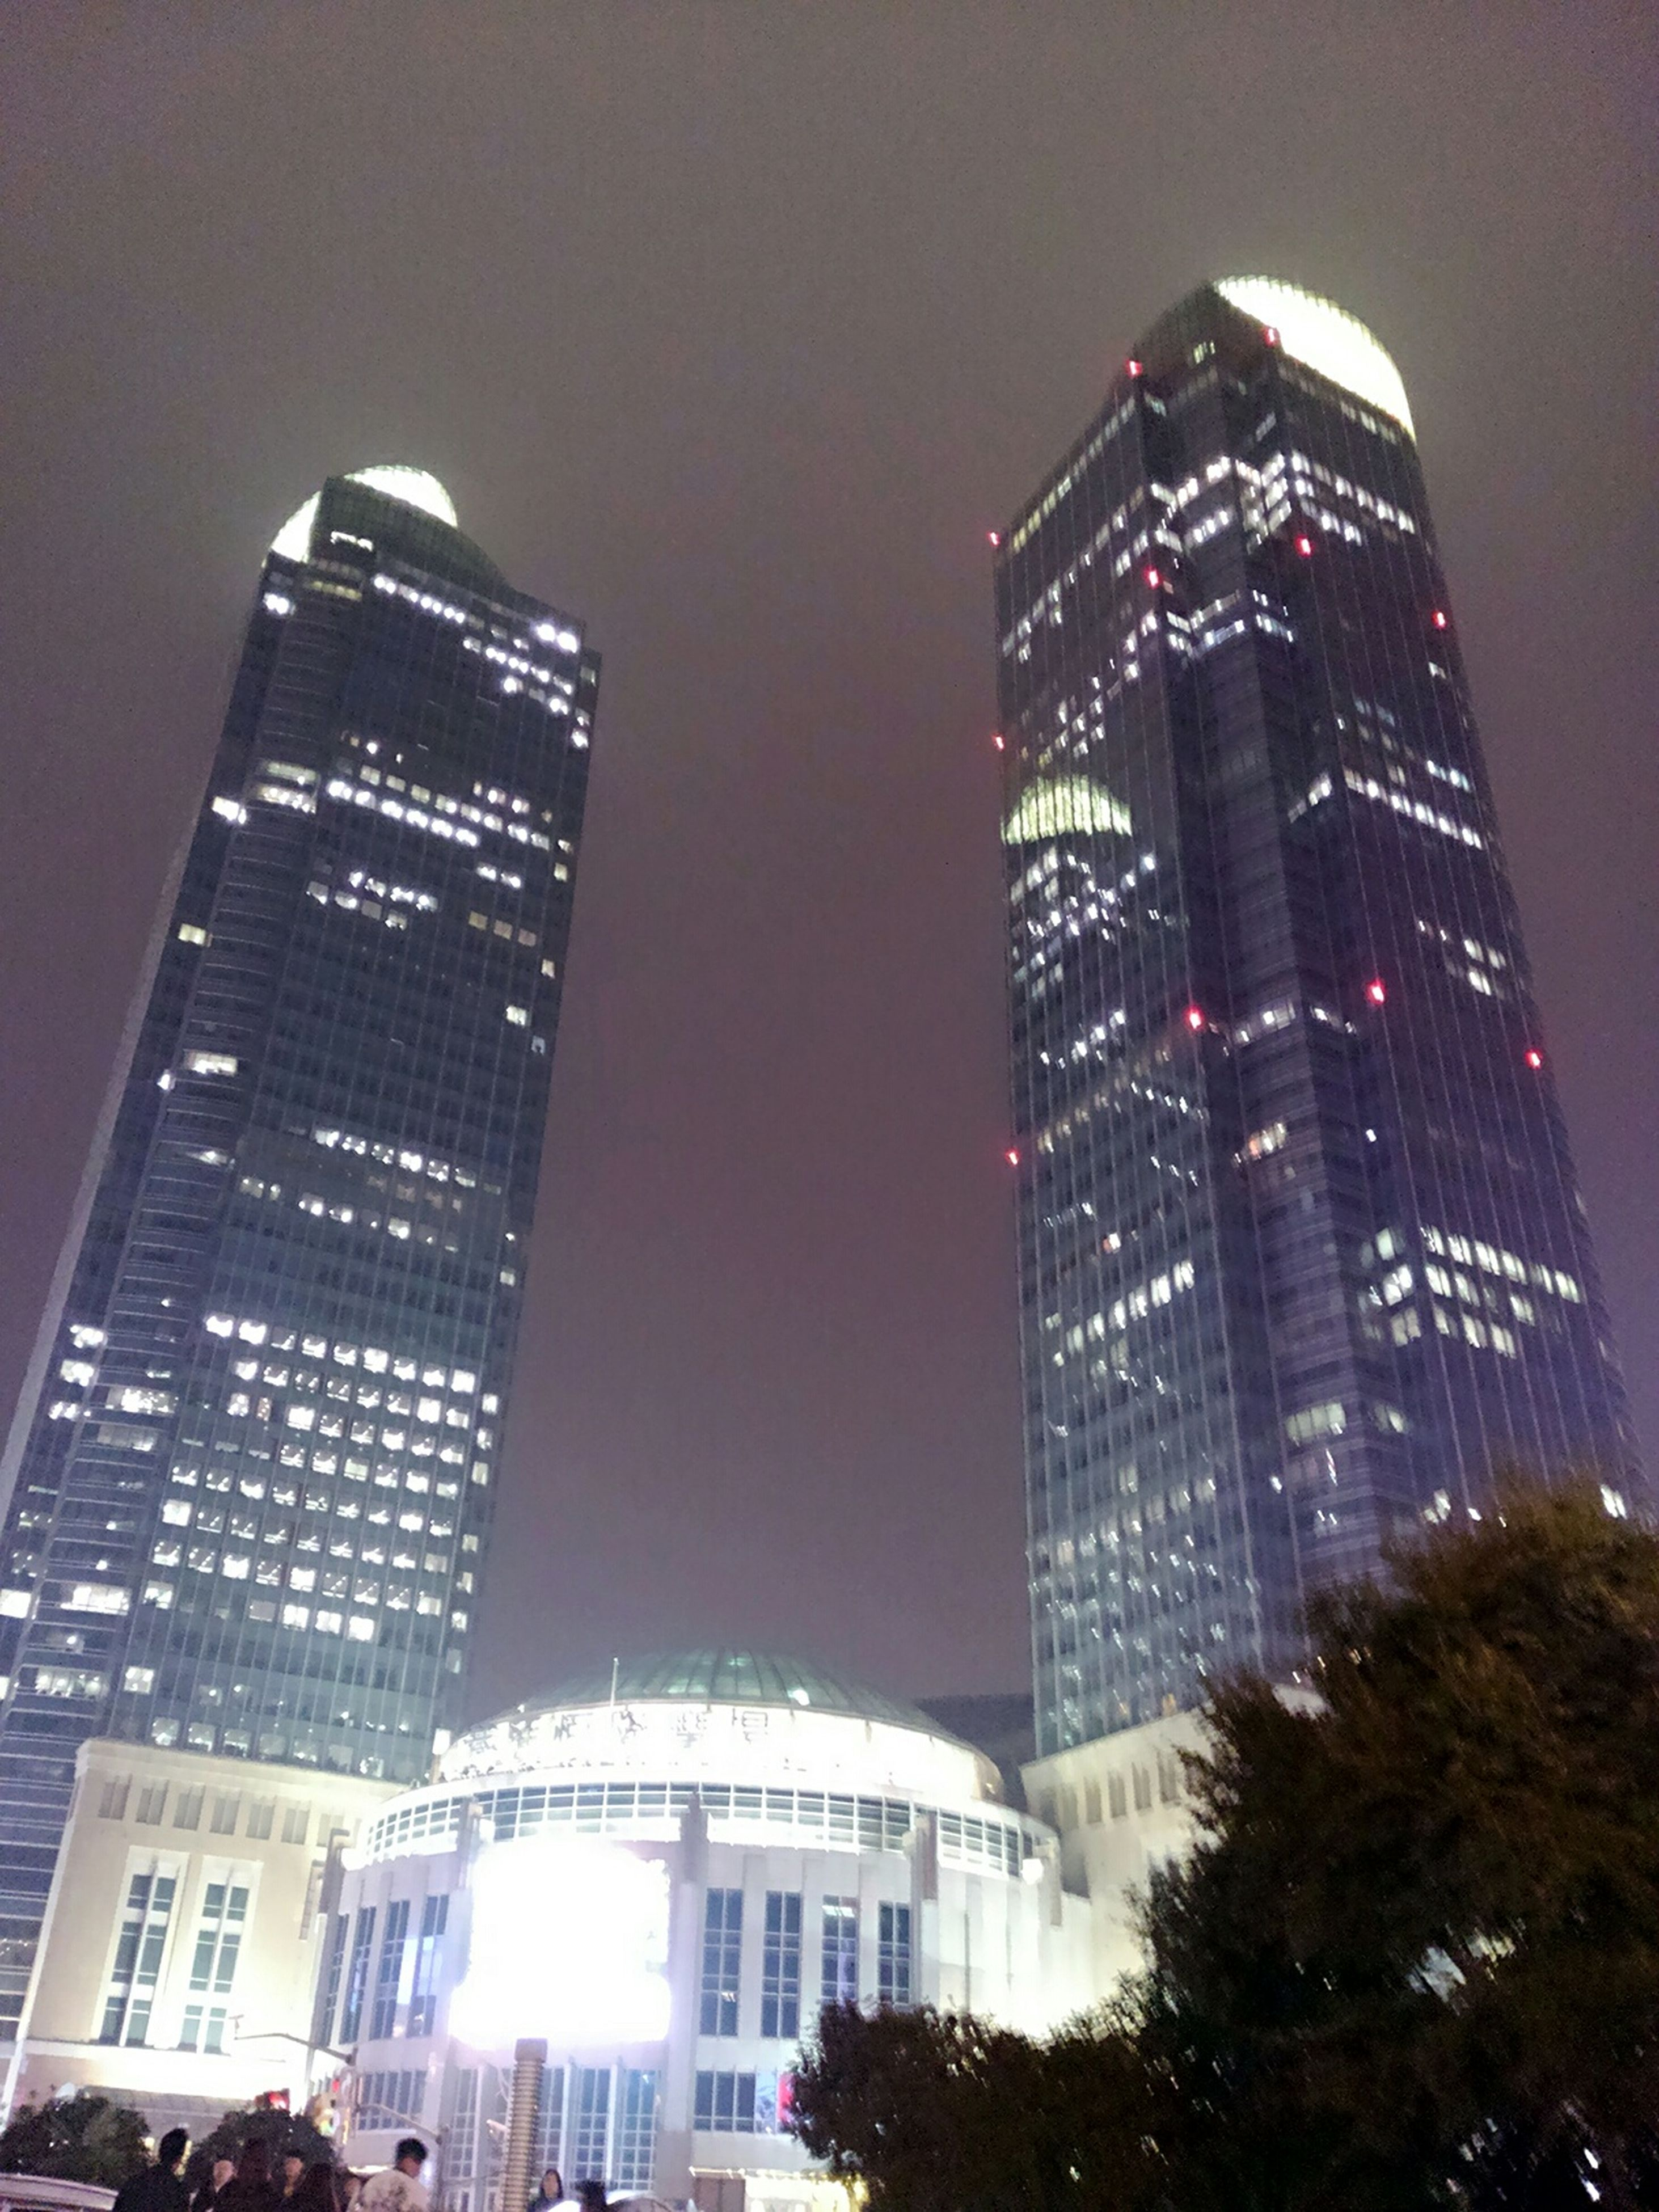 building exterior, architecture, built structure, skyscraper, city, modern, tall - high, tower, office building, low angle view, illuminated, sky, building, financial district, night, tall, urban skyline, clear sky, city life, capital cities